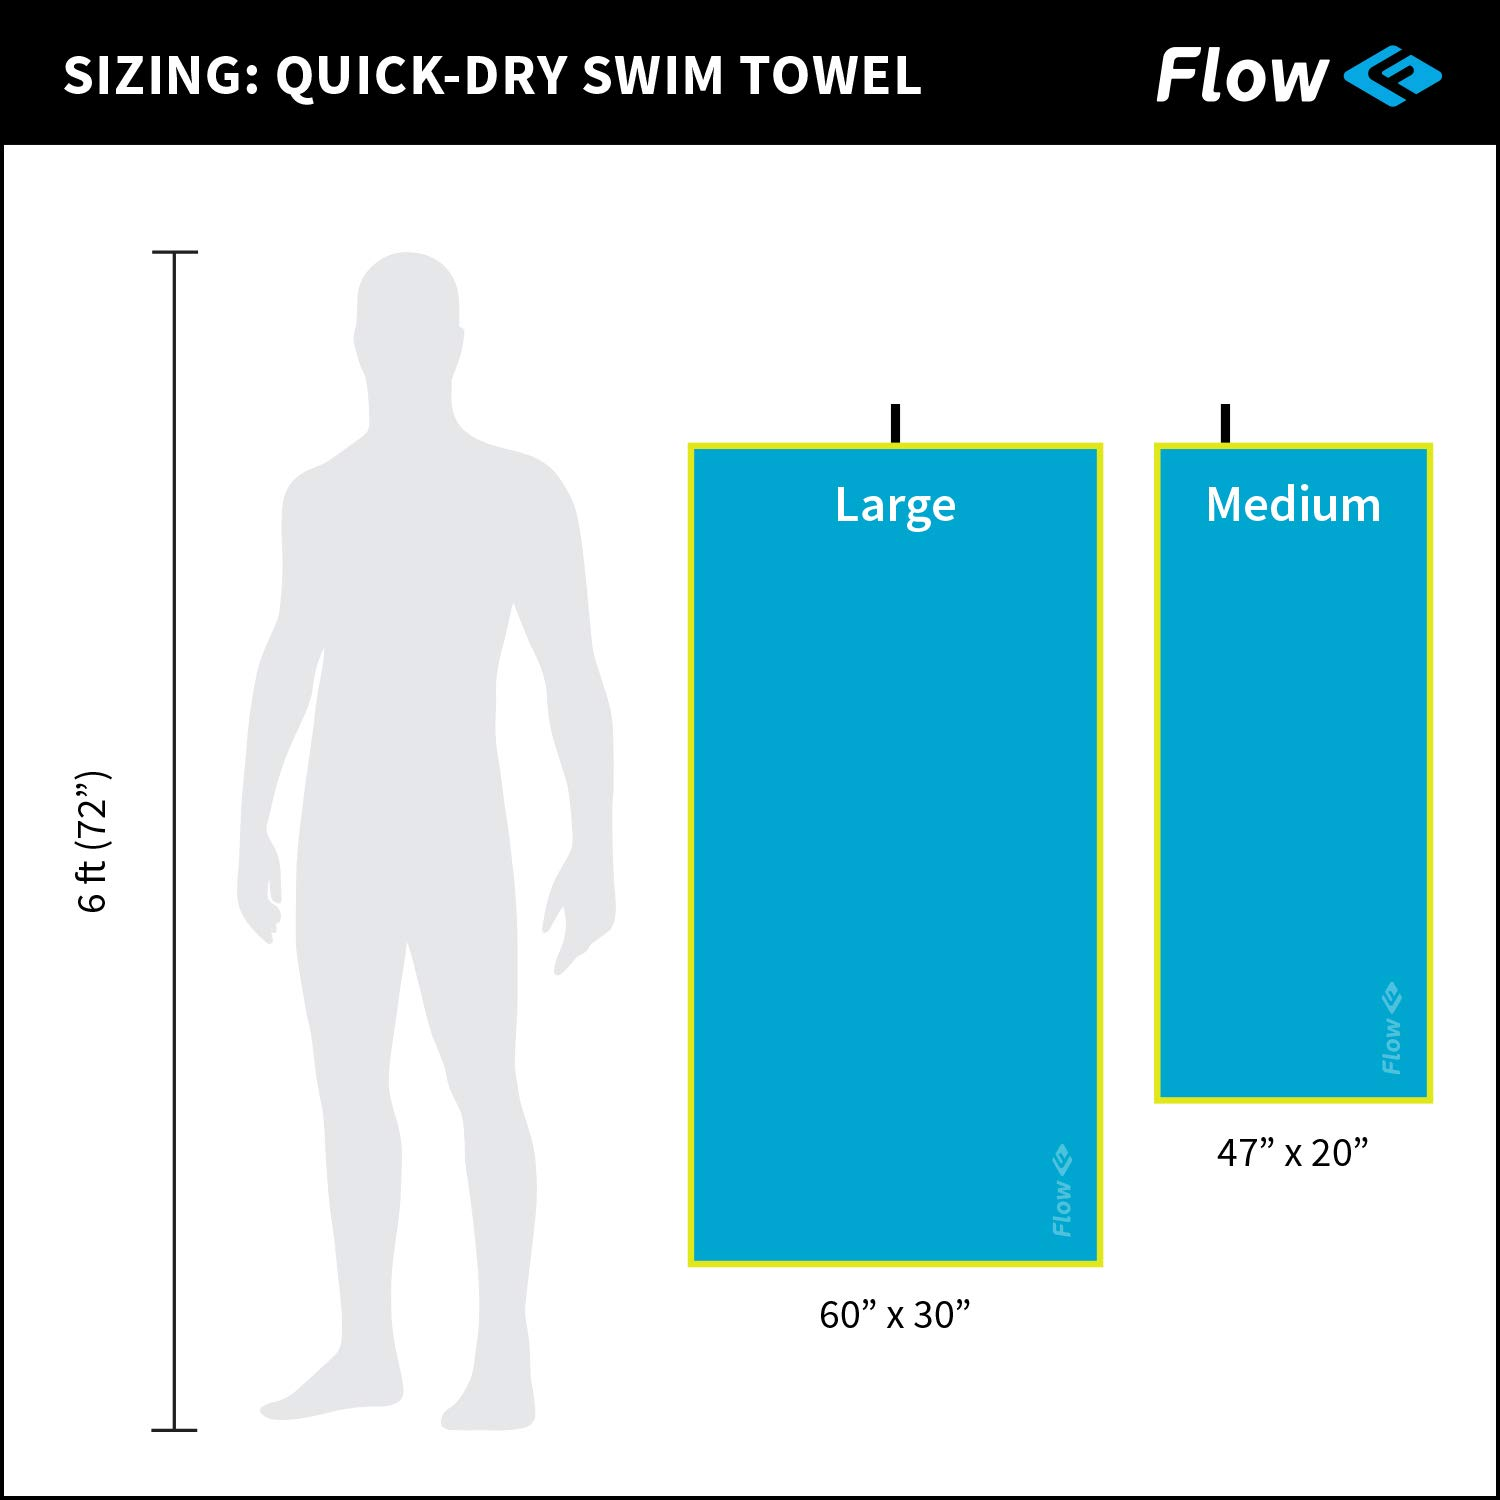 Blue, Purple, Gray Flow Quick Dry Swim Towel for Competitive Swimming Available in 2 Sizes and 3 Colors